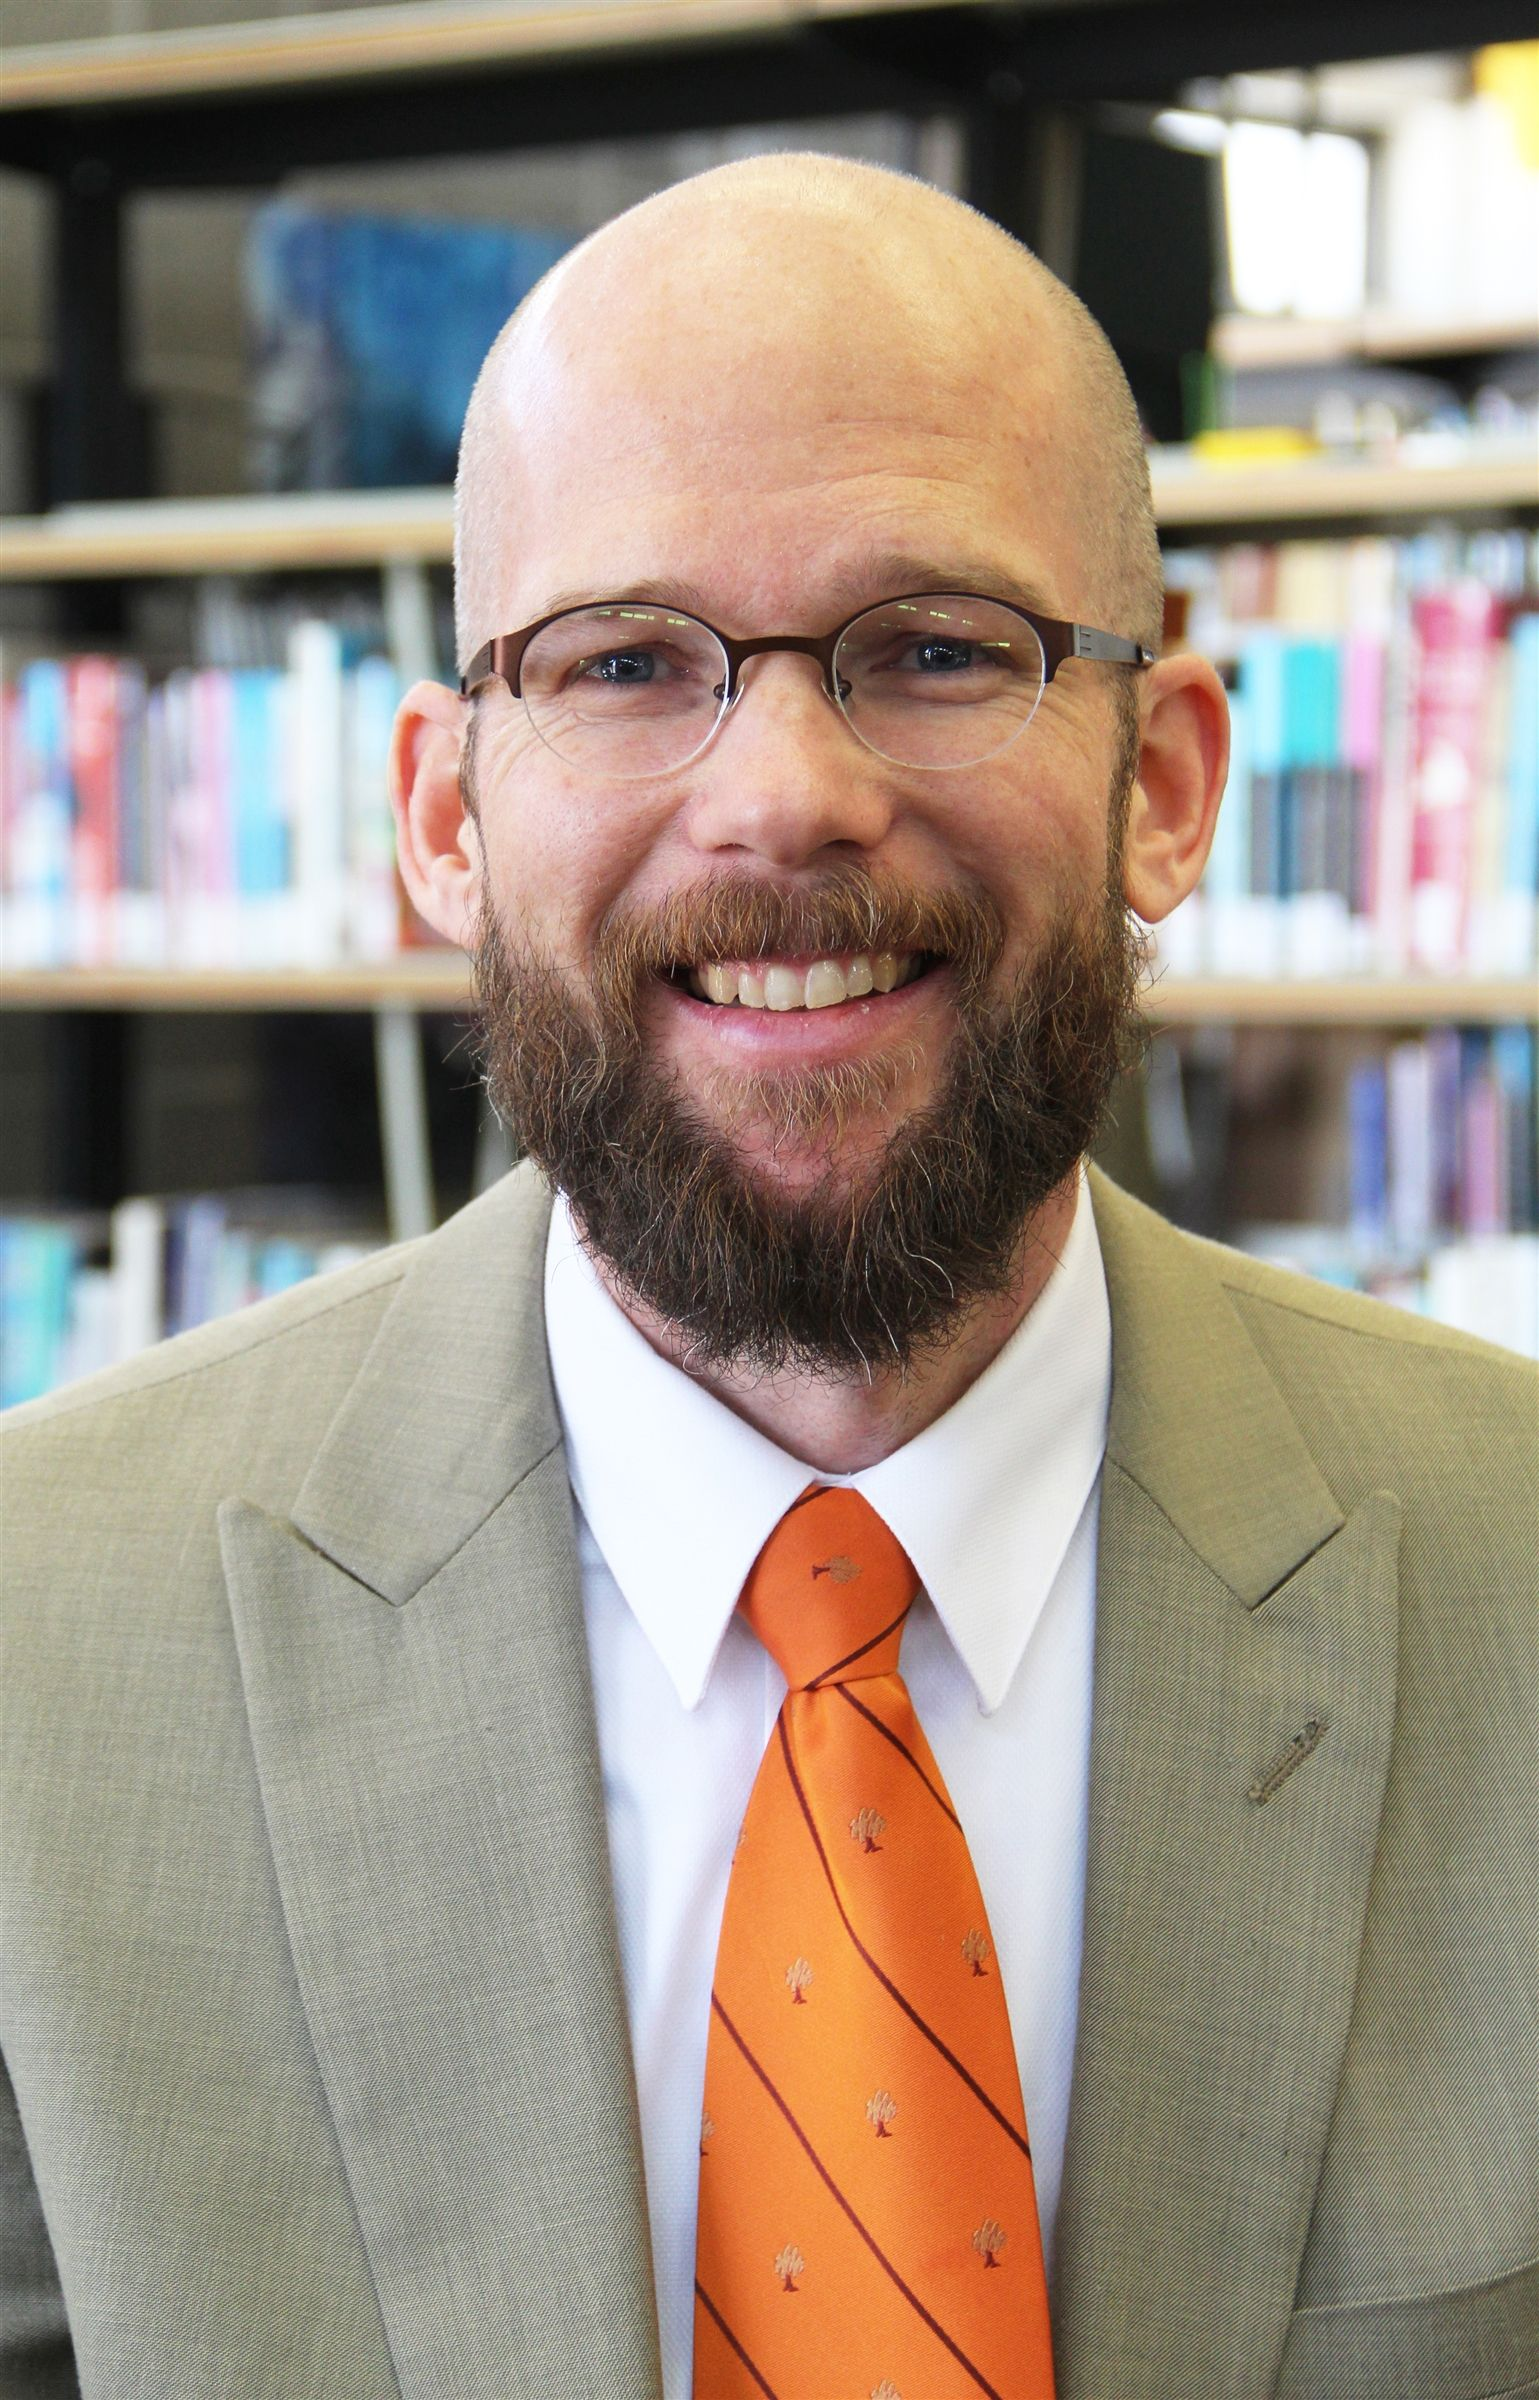 Incoming Head of School Jeremy Besch